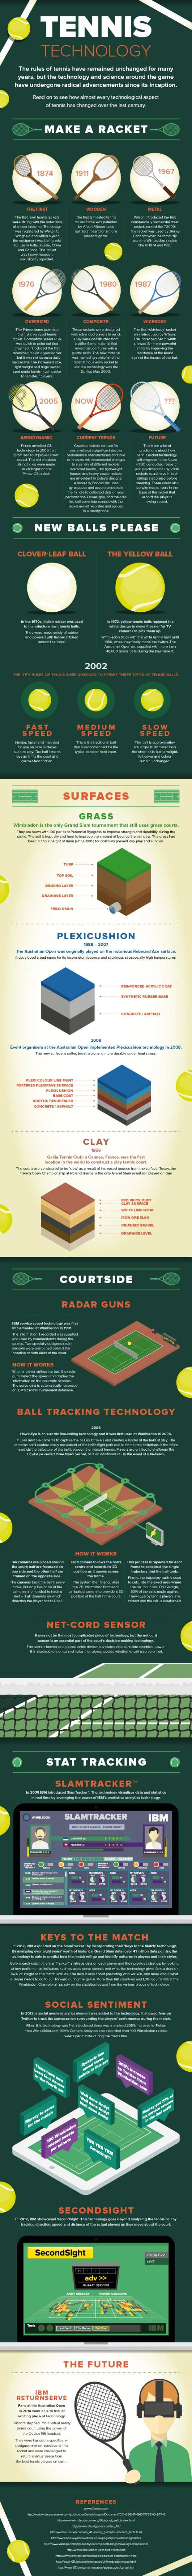 An Infographic of Tennis through the ages ahead of tonight's #Wimbledon kicking off.